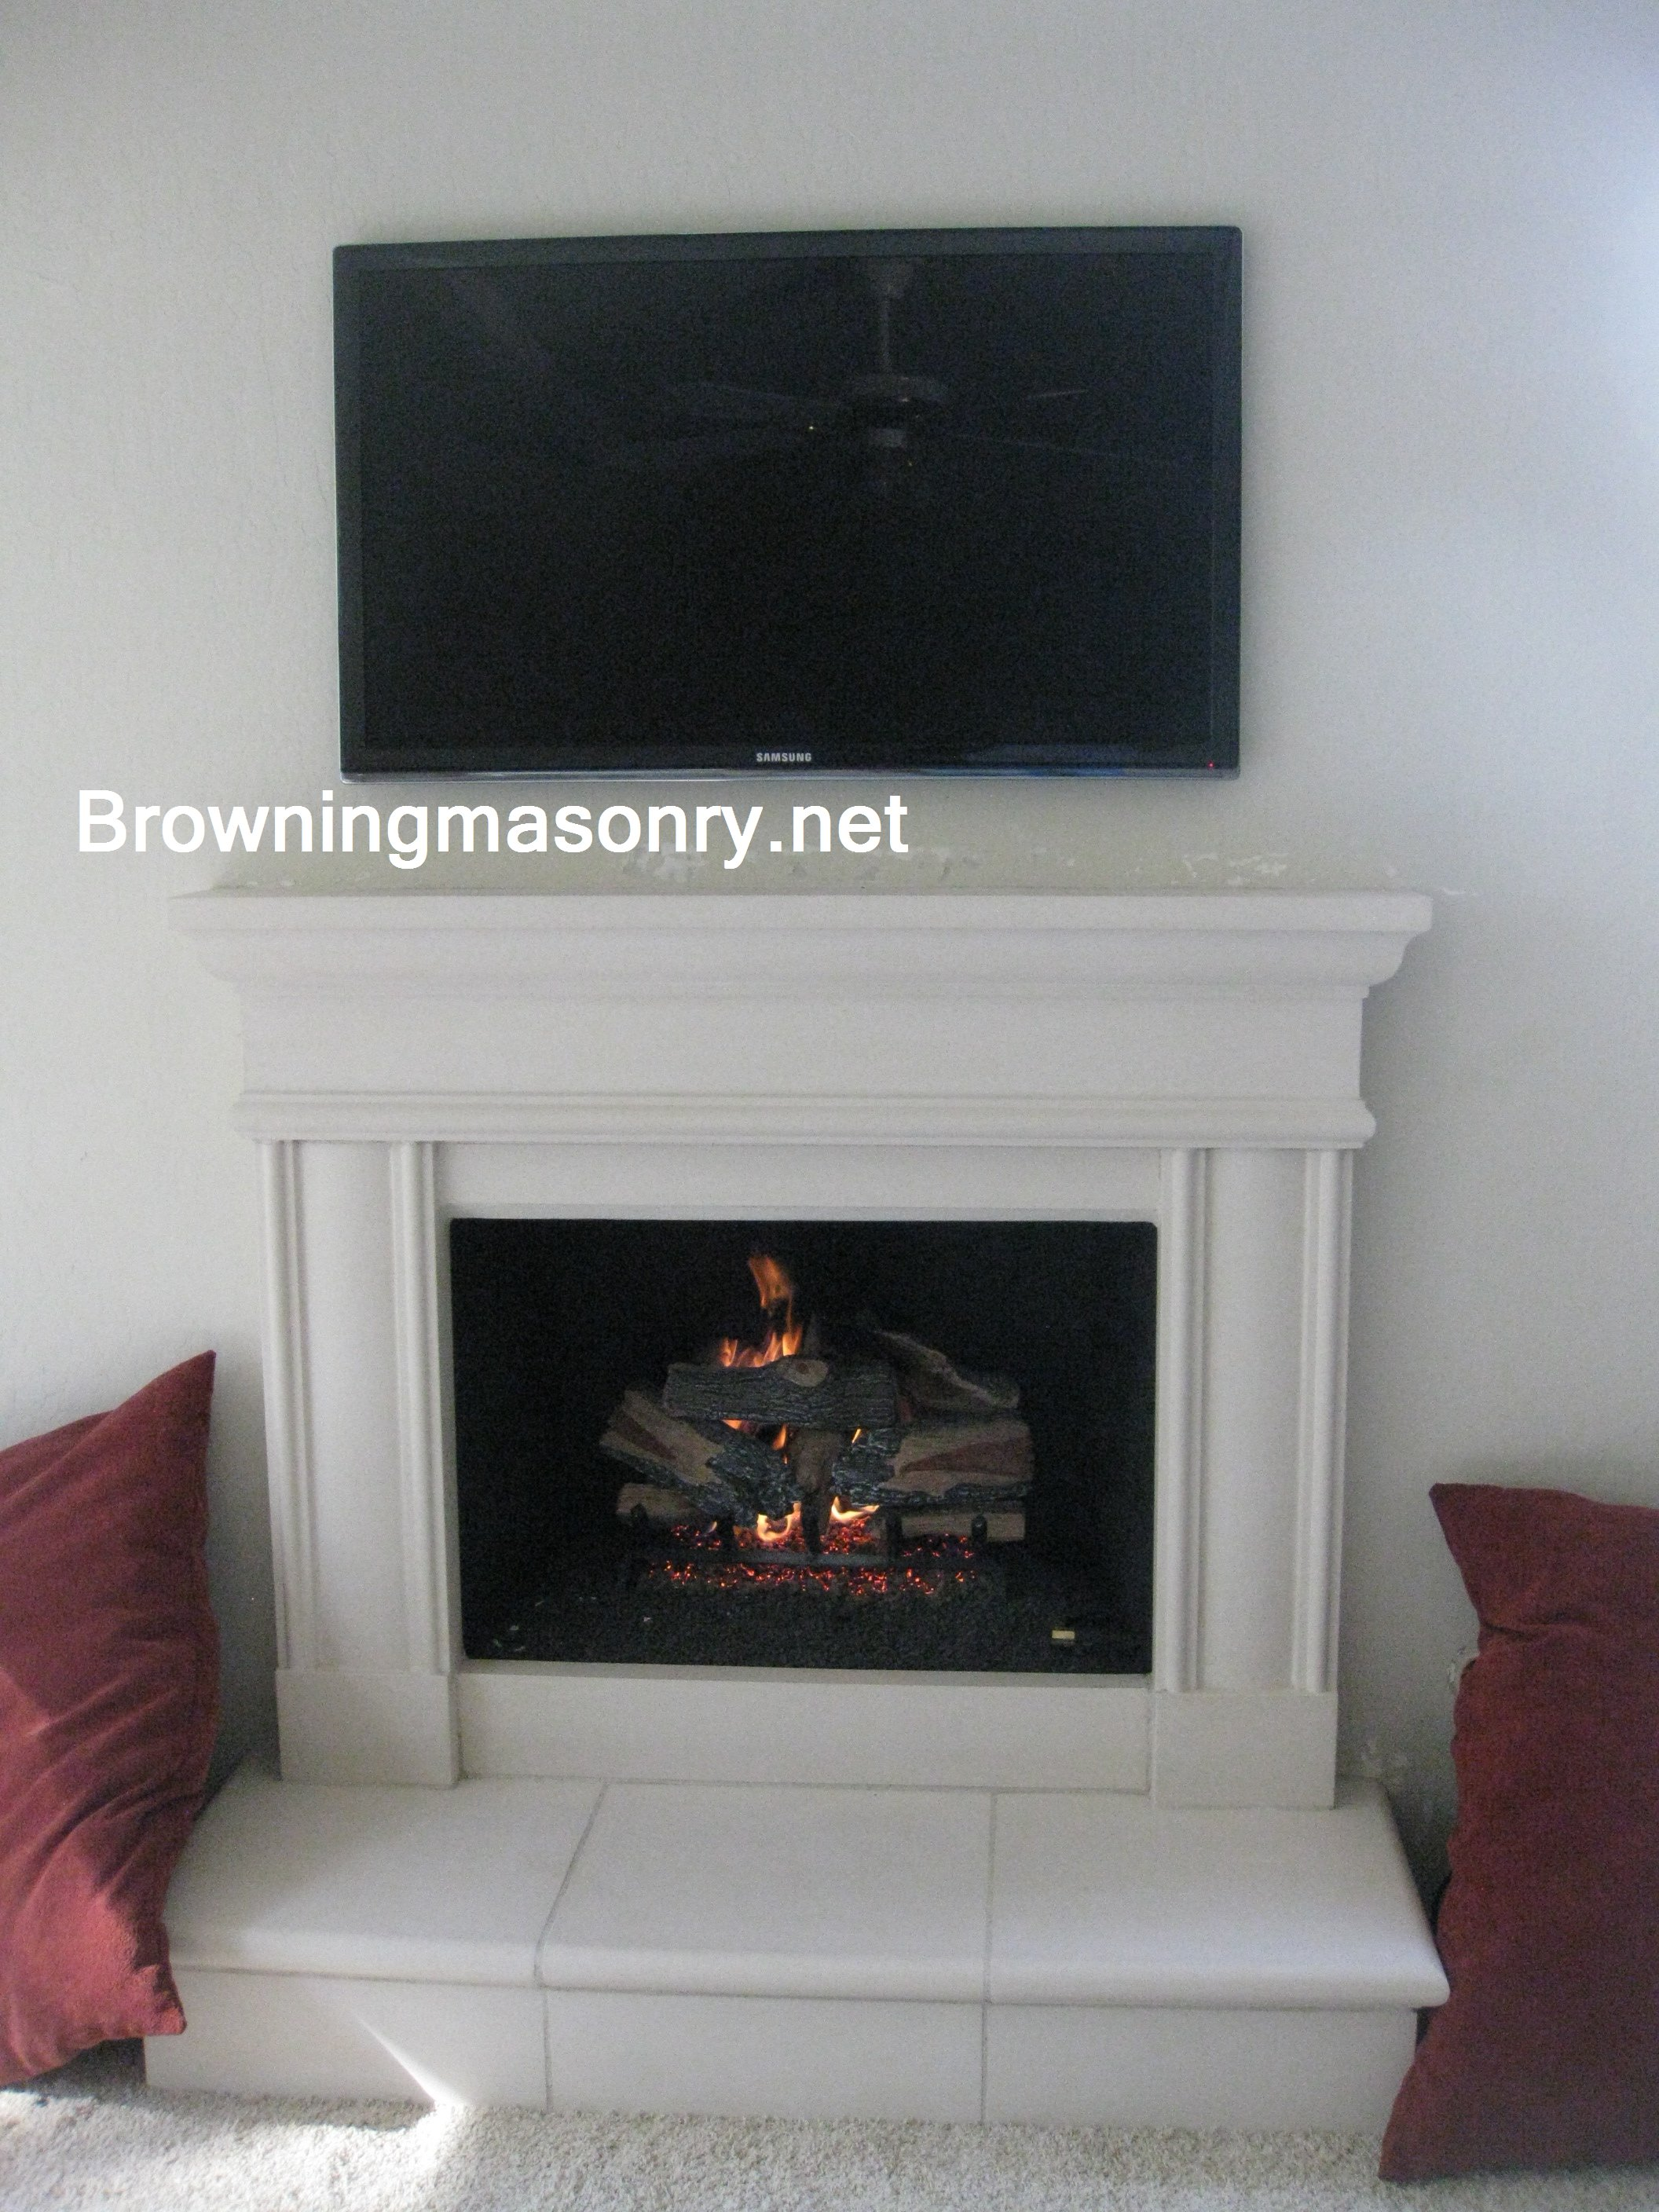 direct conversion avalon com and desafiomogena udp eden country x vent gas stove fireplace